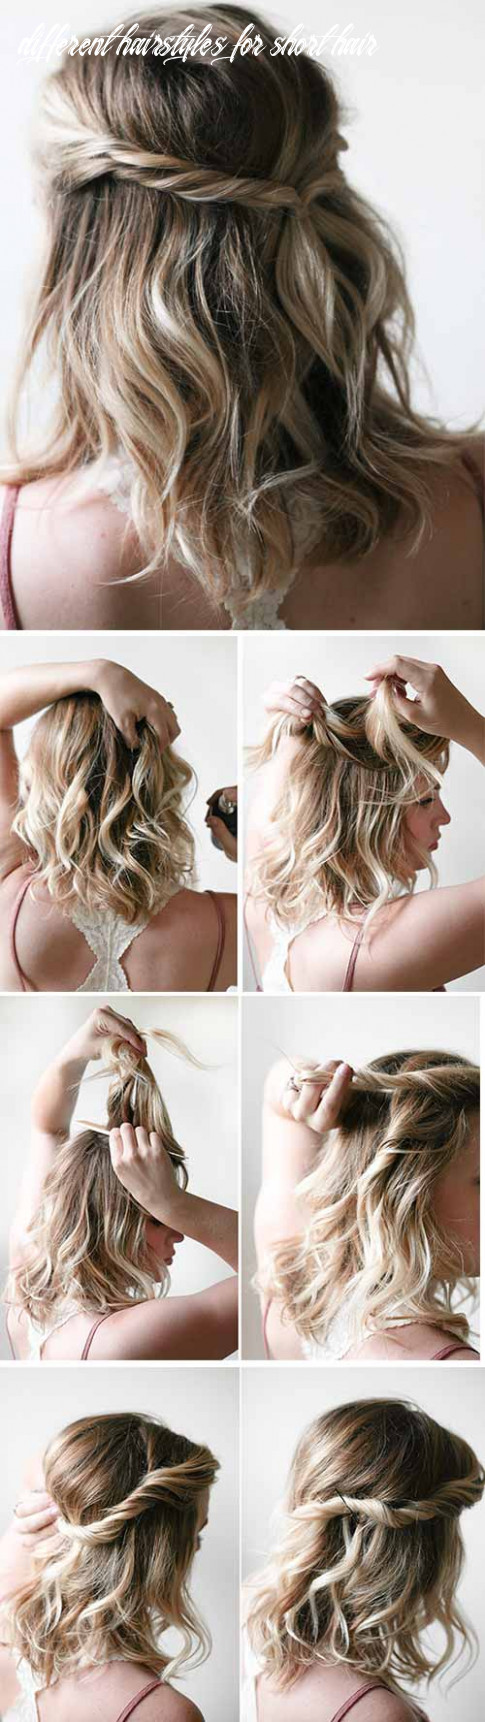 12 incredible diy short hairstyles a step by step guide different hairstyles for short hair